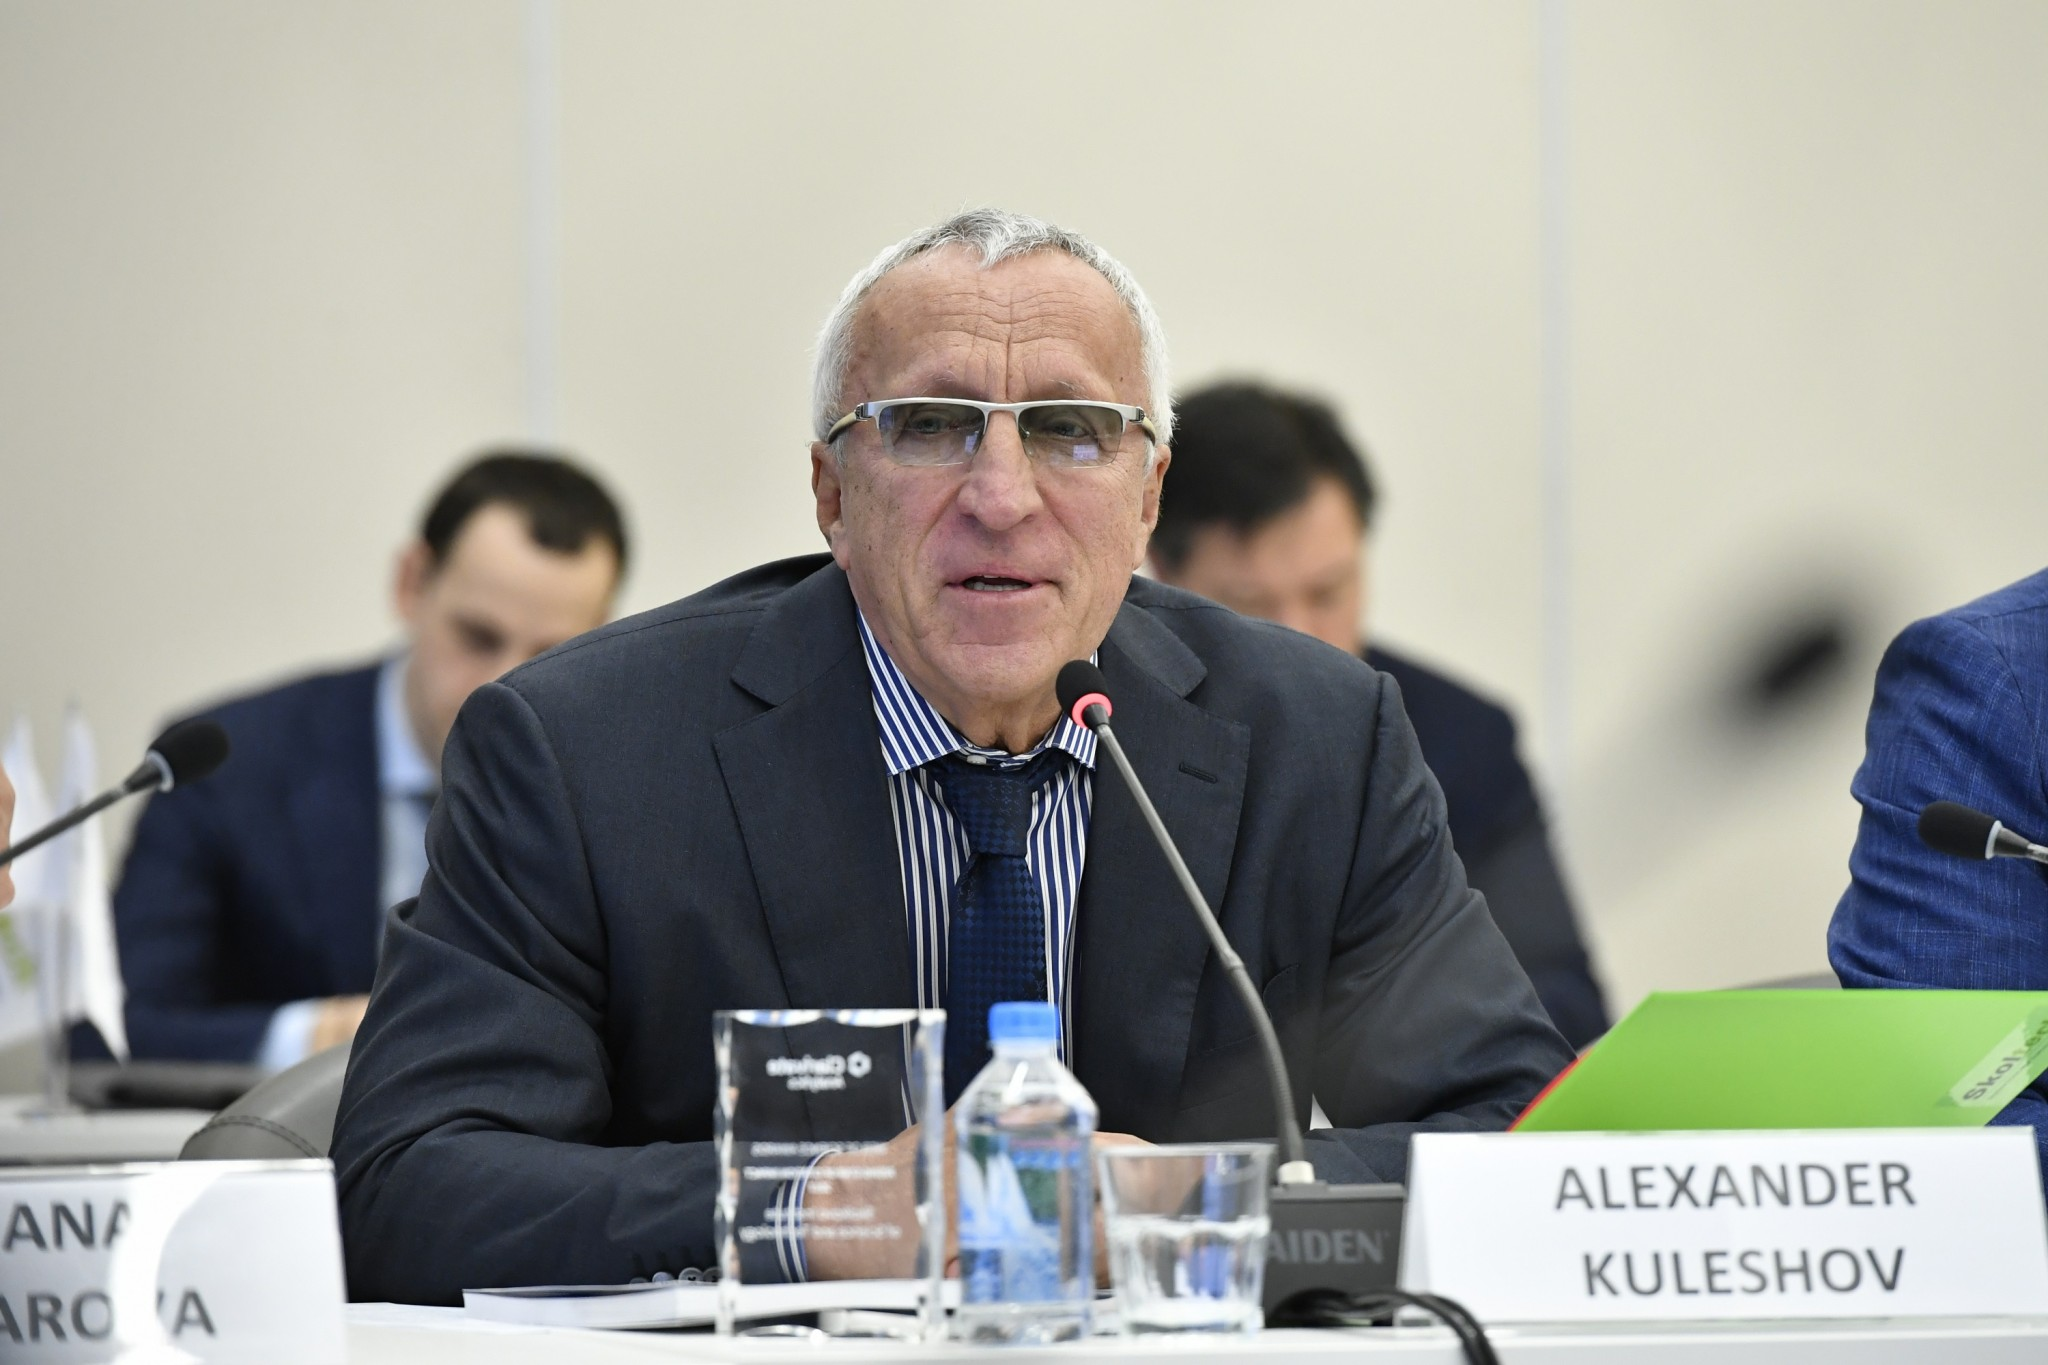 Alexander Kuleshov, pictured at a recent meeting of the Skoltech Board of Trustees. Photo: Skoltech.